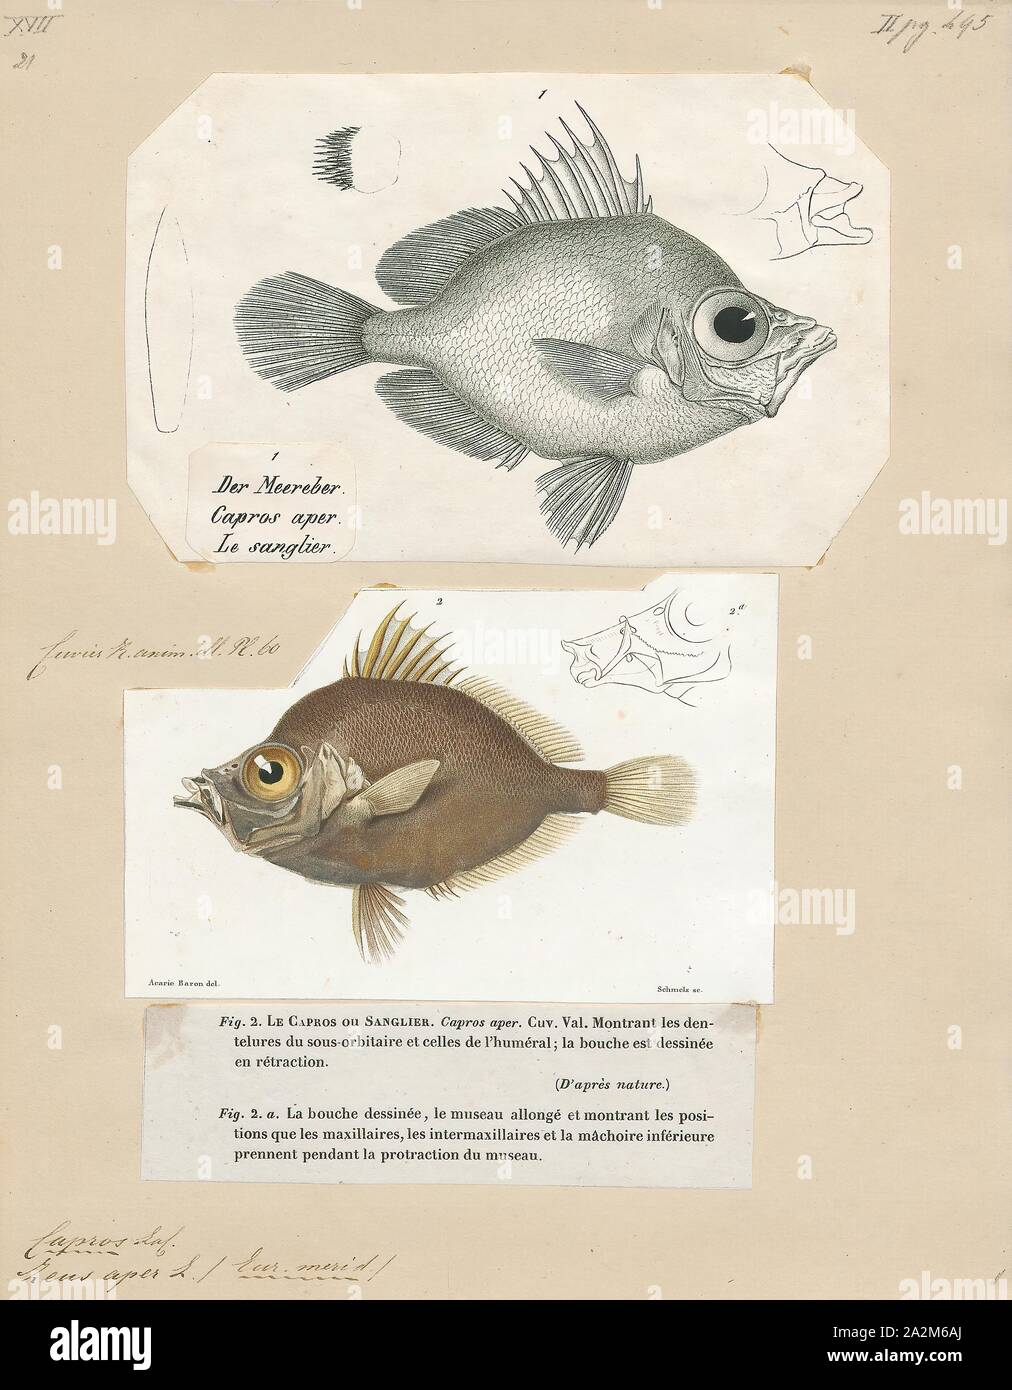 Capros aper, Print, The boarfish (Capros aper) is a species of fish in the Caproidae family, the only known member of its genus., 1700-1880 Stock Photo